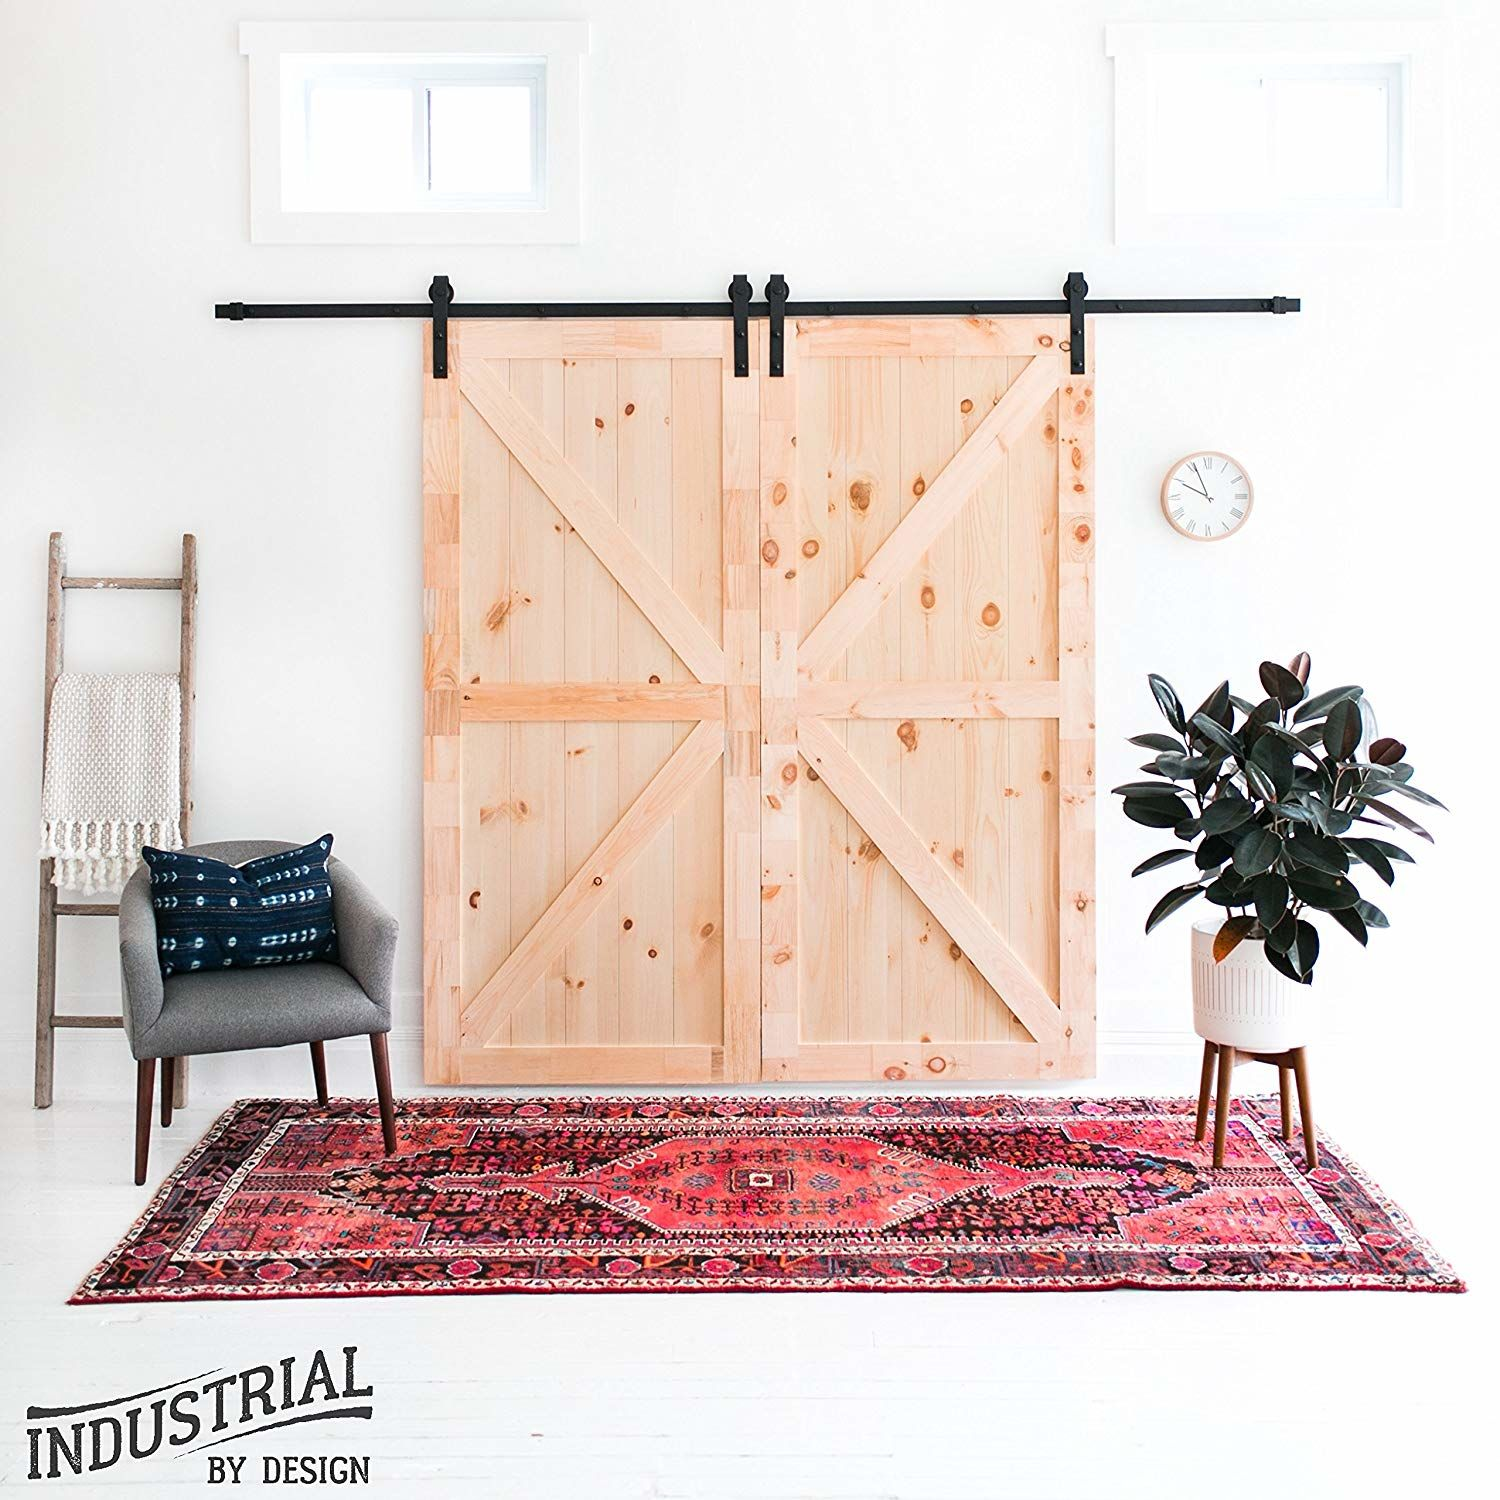 WATCH: This Sliding Barn Door Hardware Kit on Amazon Is Amazing